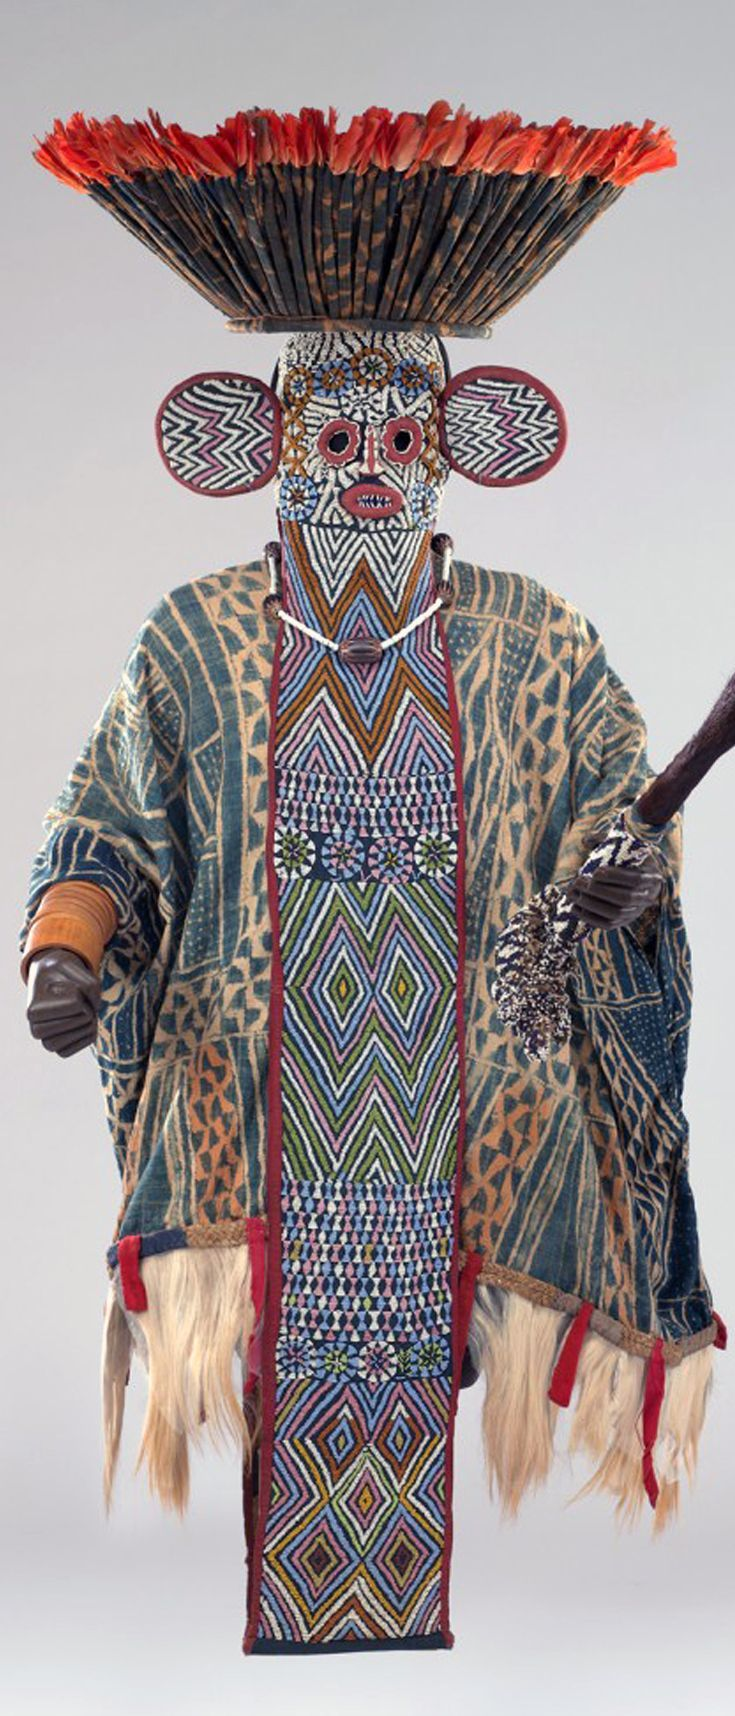 Africa   Mask Ensemble of the Kuosi Society Member. Bamileke people, Cameroon   ca. 19th - 20th century   Fabric, monkey fur, glass beads, feathers, reeds, string, horsetail, ivory